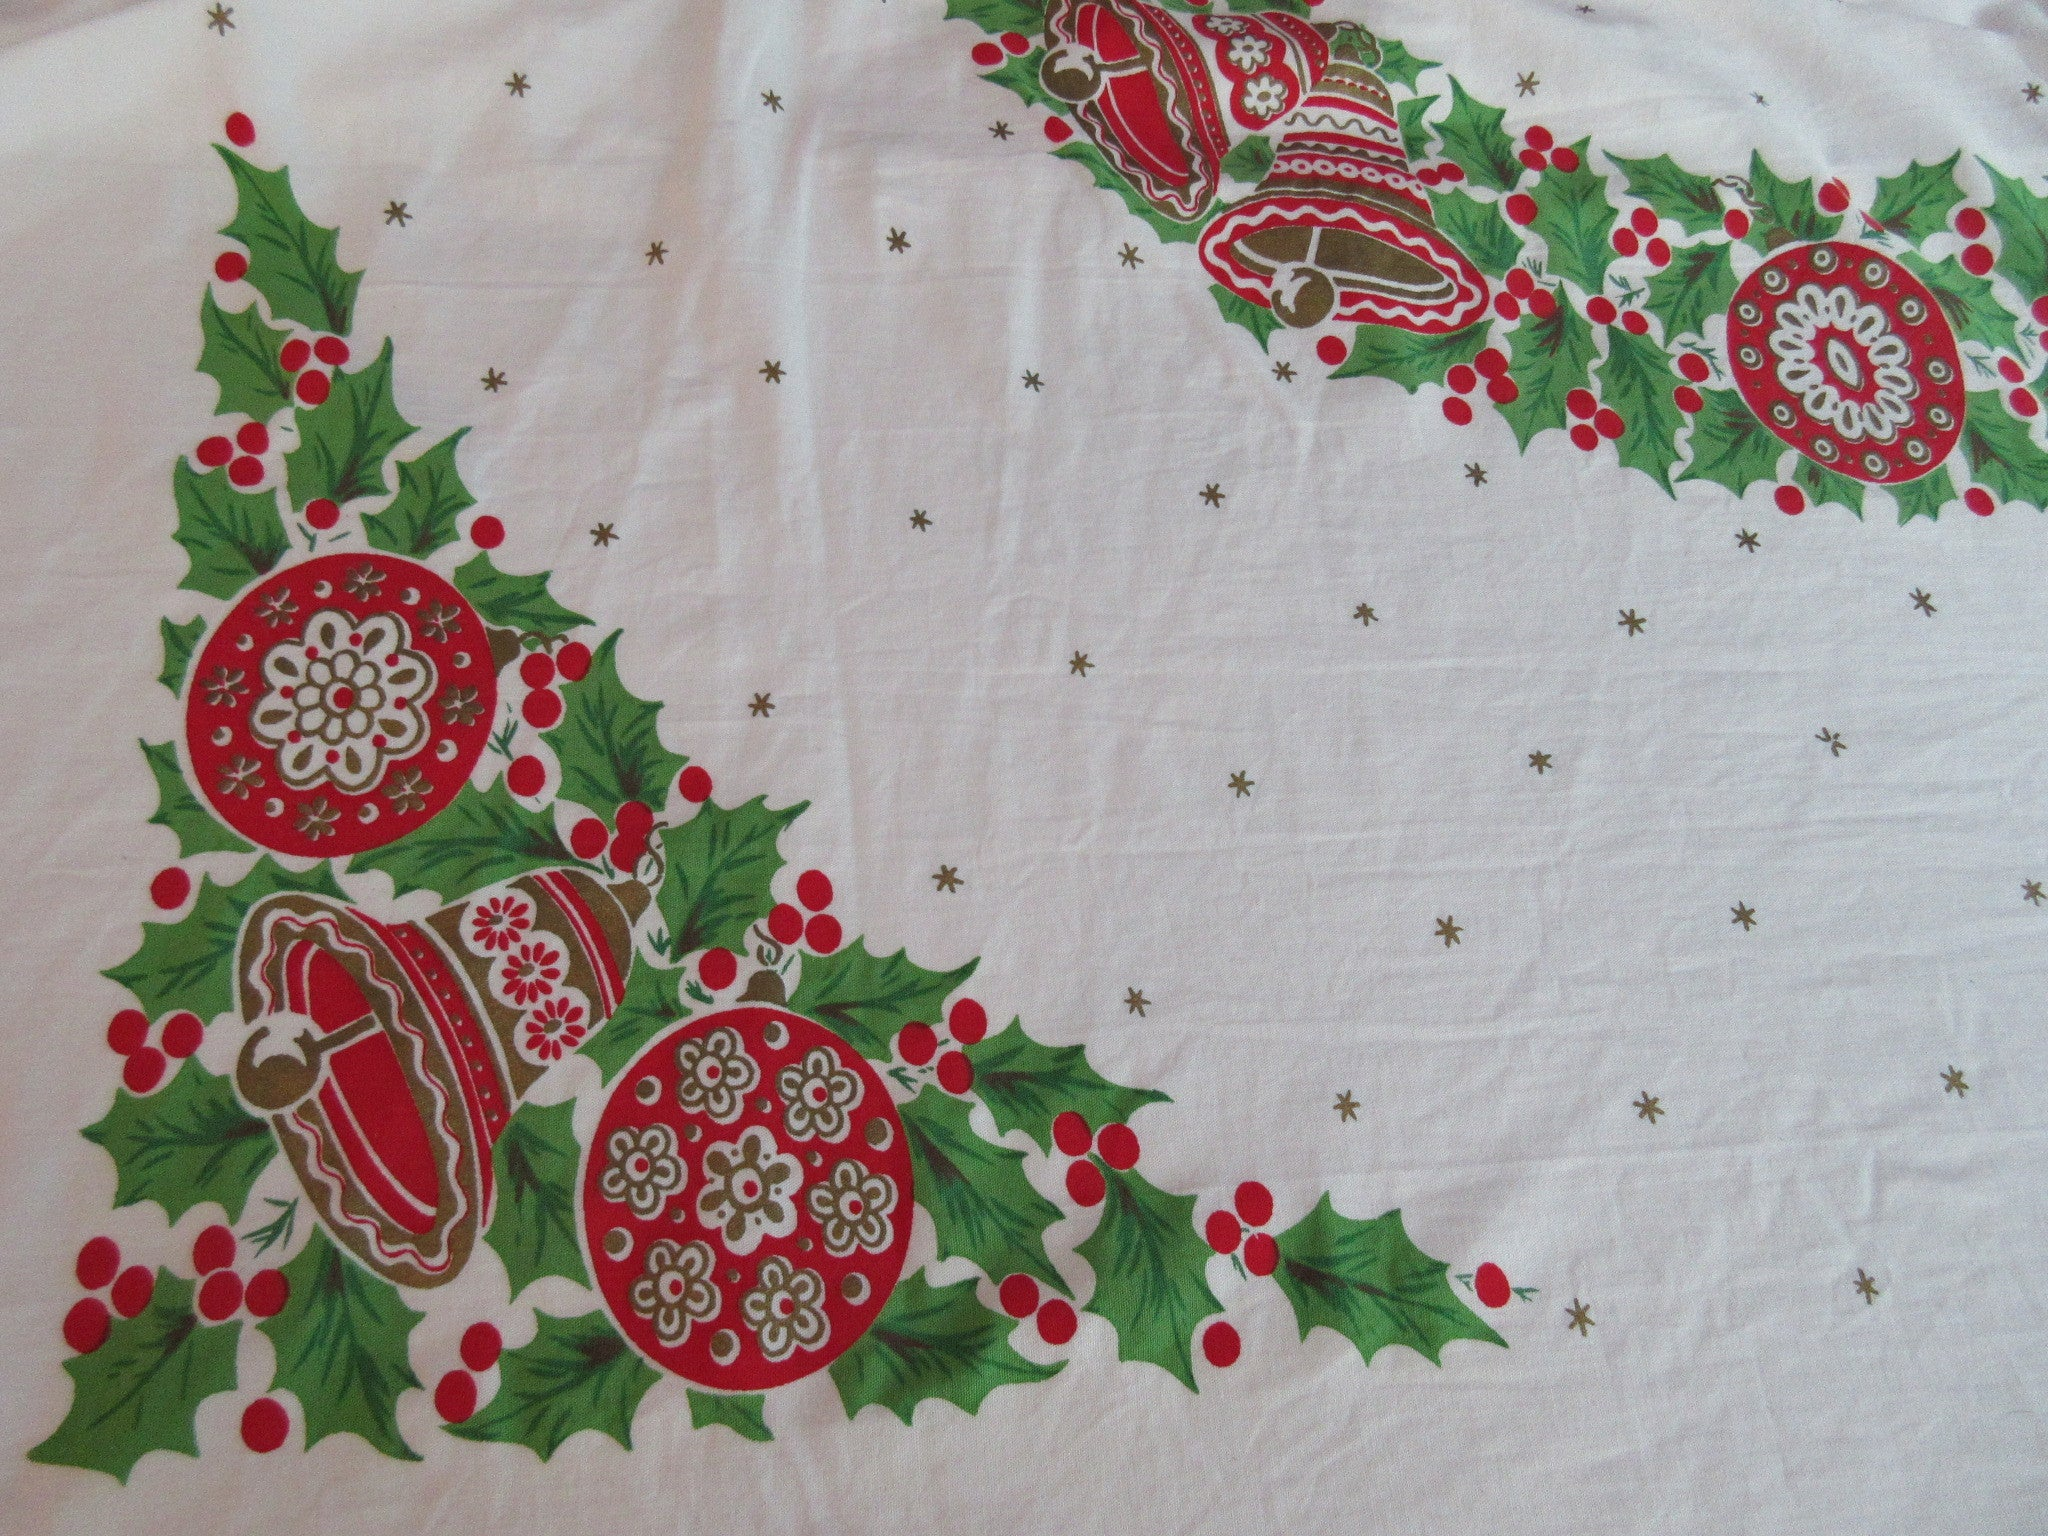 Fabulous Large Bucilla Shiny Brights Holly NWOT Christmas Vintage Printed Tablecloth (72 X 62)